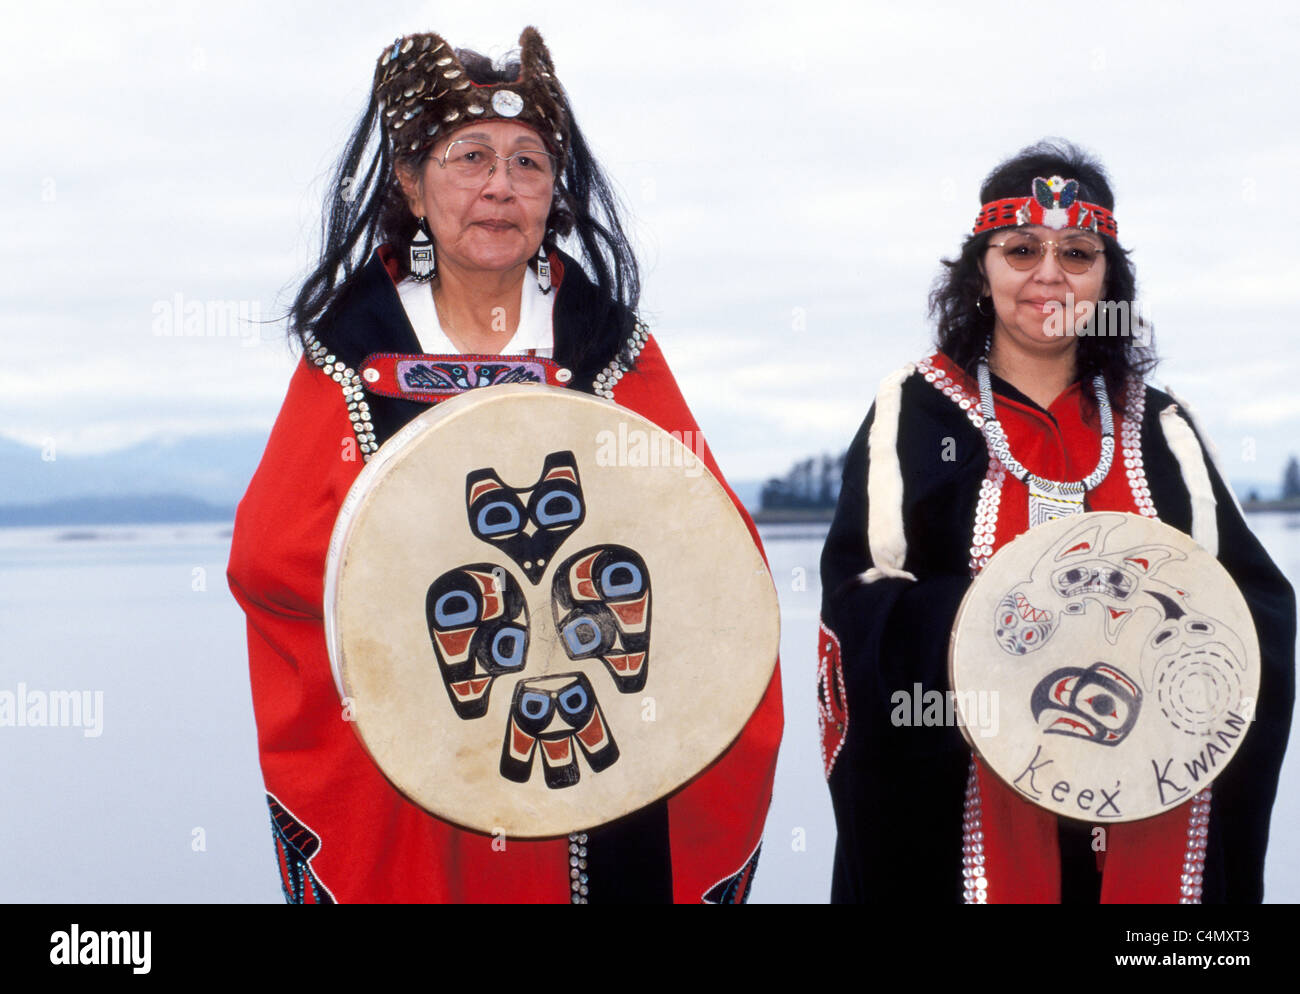 Two Tlingit Native American women display traditional capes designed with buttons and drums of the Keex tribe (kwaan) - Stock Image